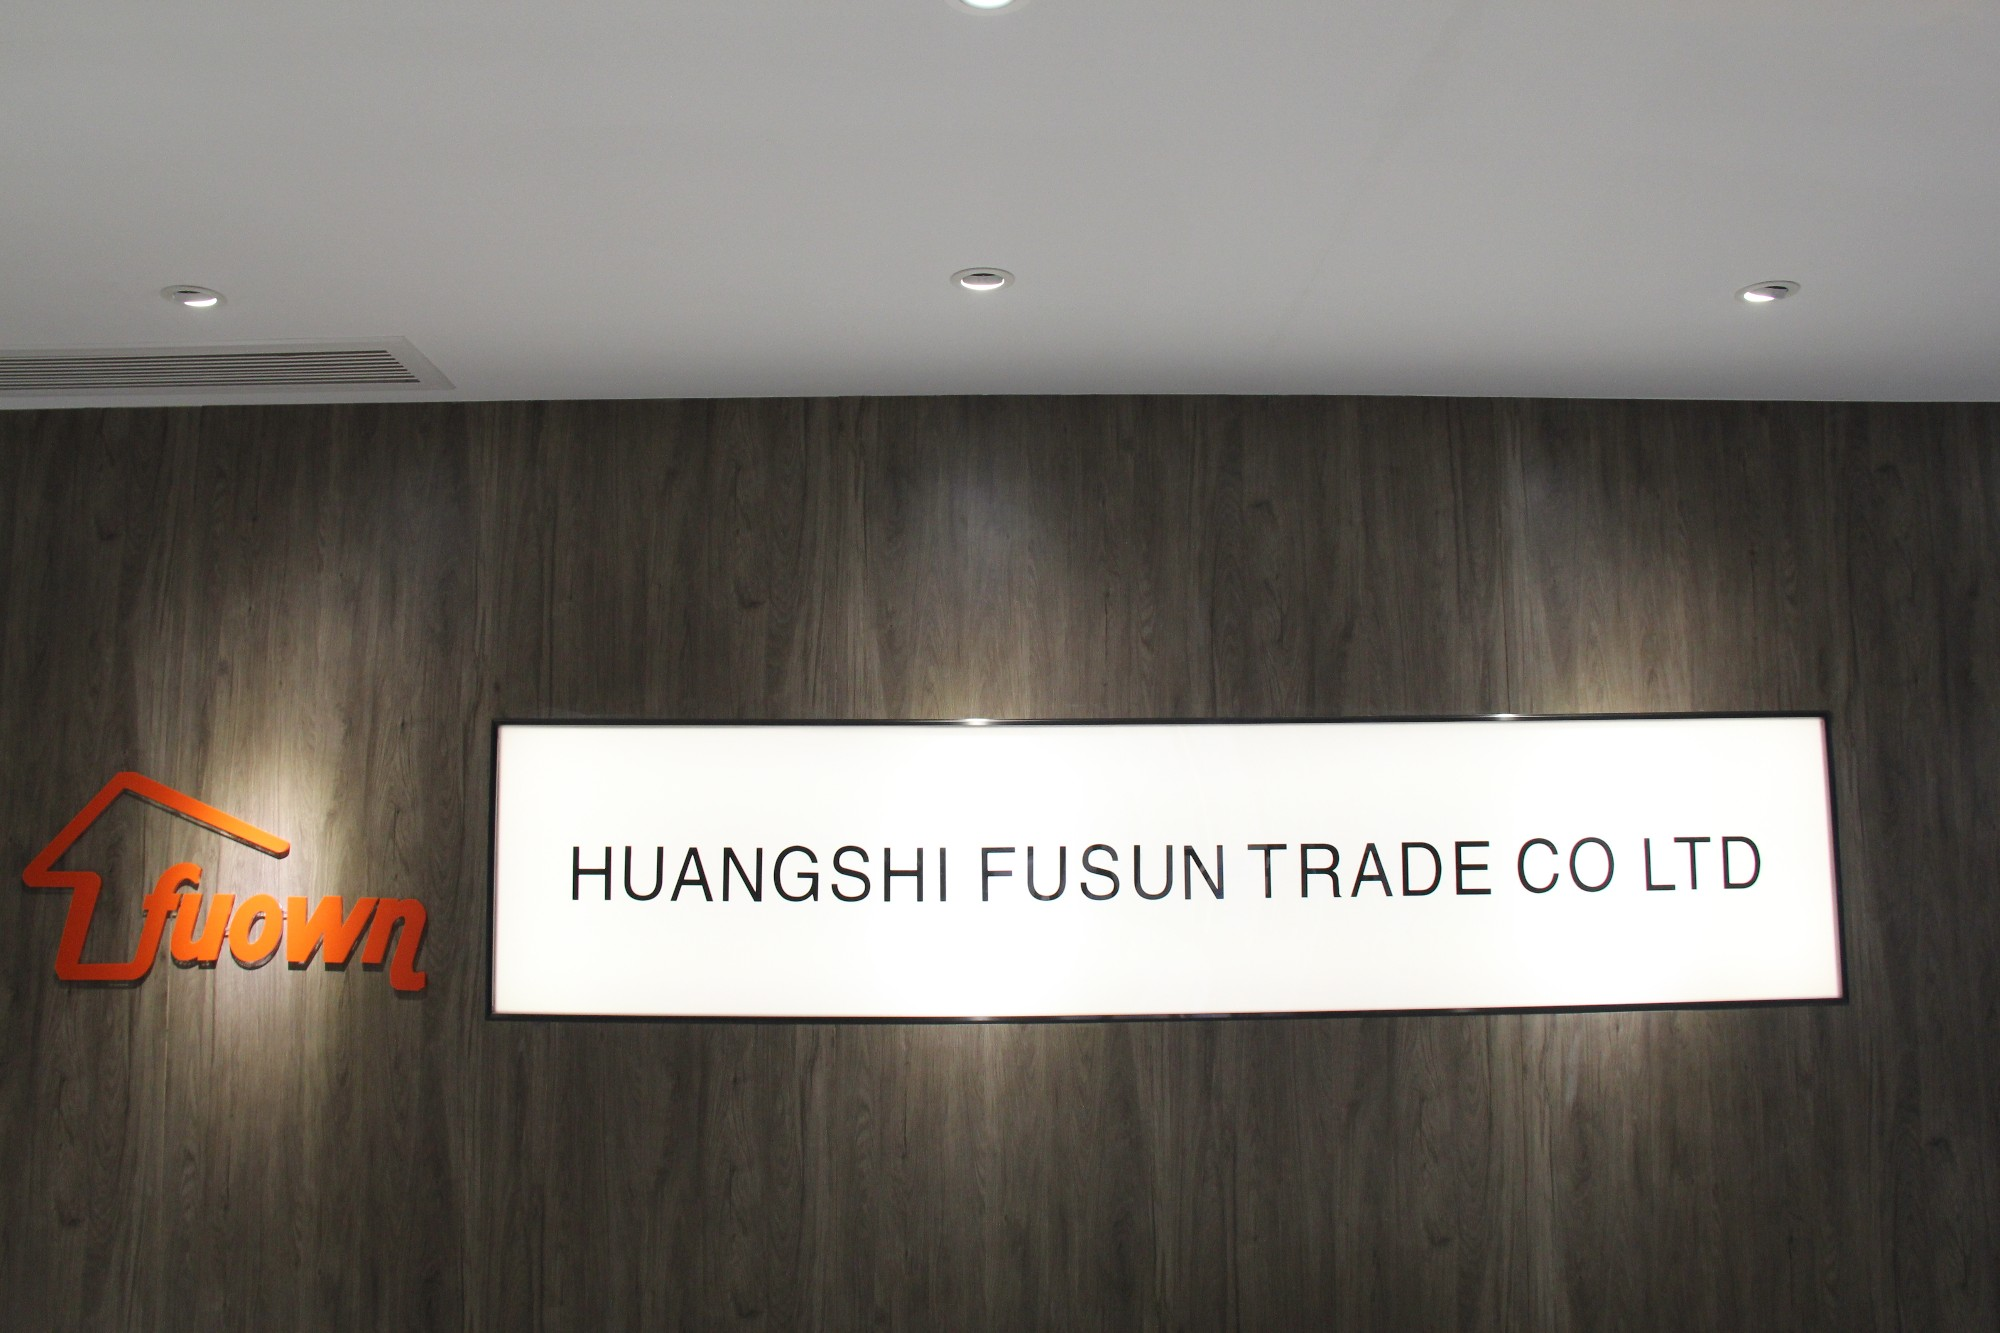 HUANGSHI FUSUN TRADE CO LTD